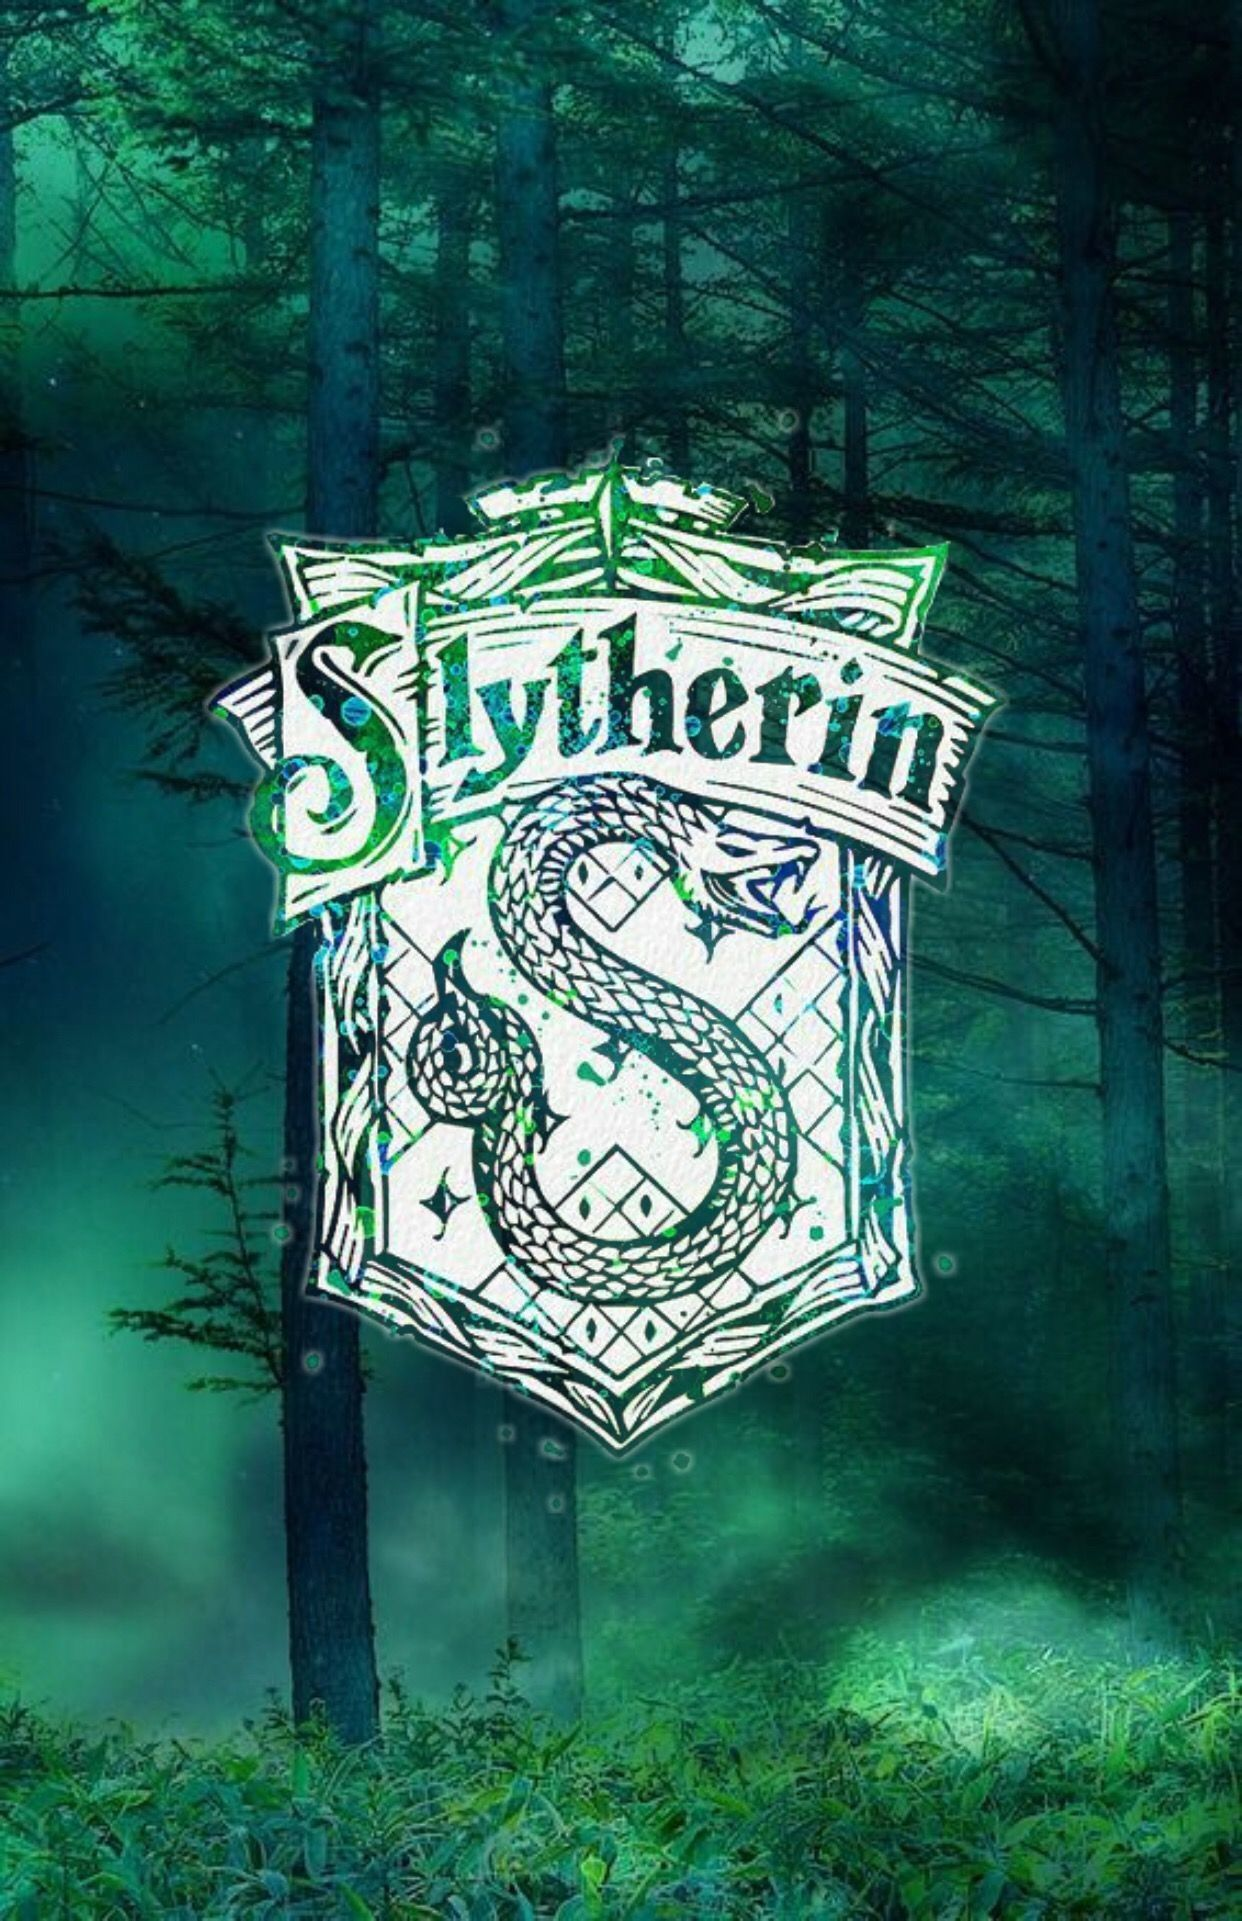 80 Slytherin Iphone Wallpapers On Wallpaperplay Harry Potter Wallpaper Harry Potter Art Slytherin Wallpaper